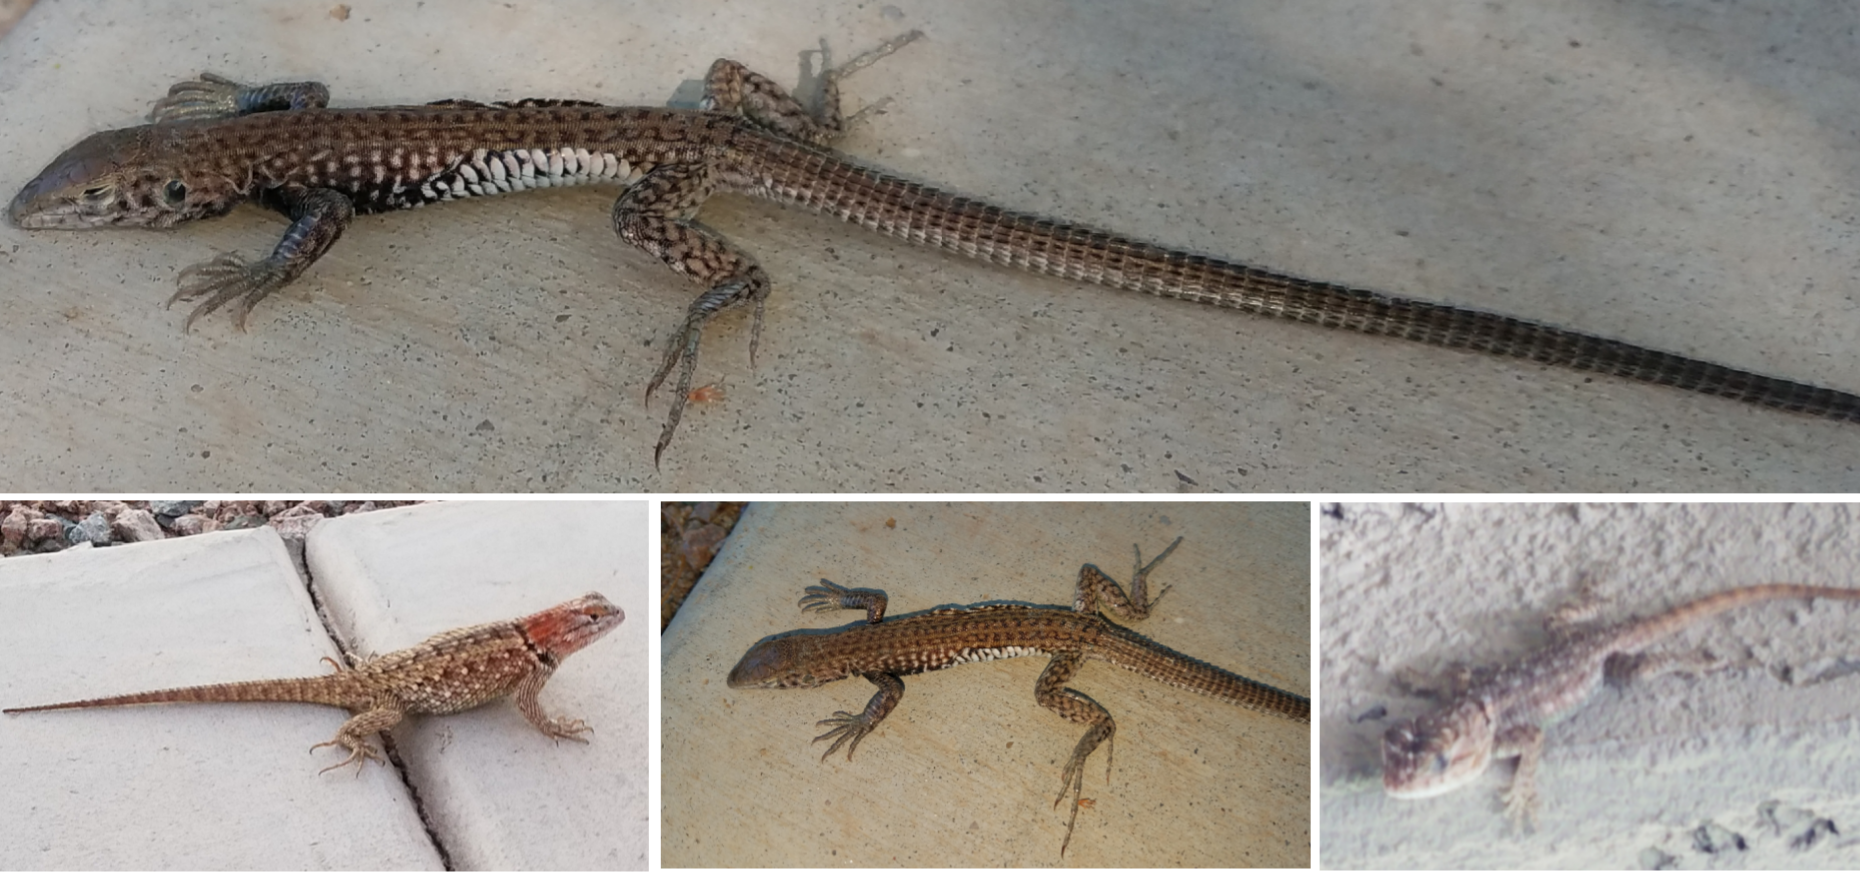 Lizards are always welcome in my yard. They eat tons of bugs and most of them are generally harmless.